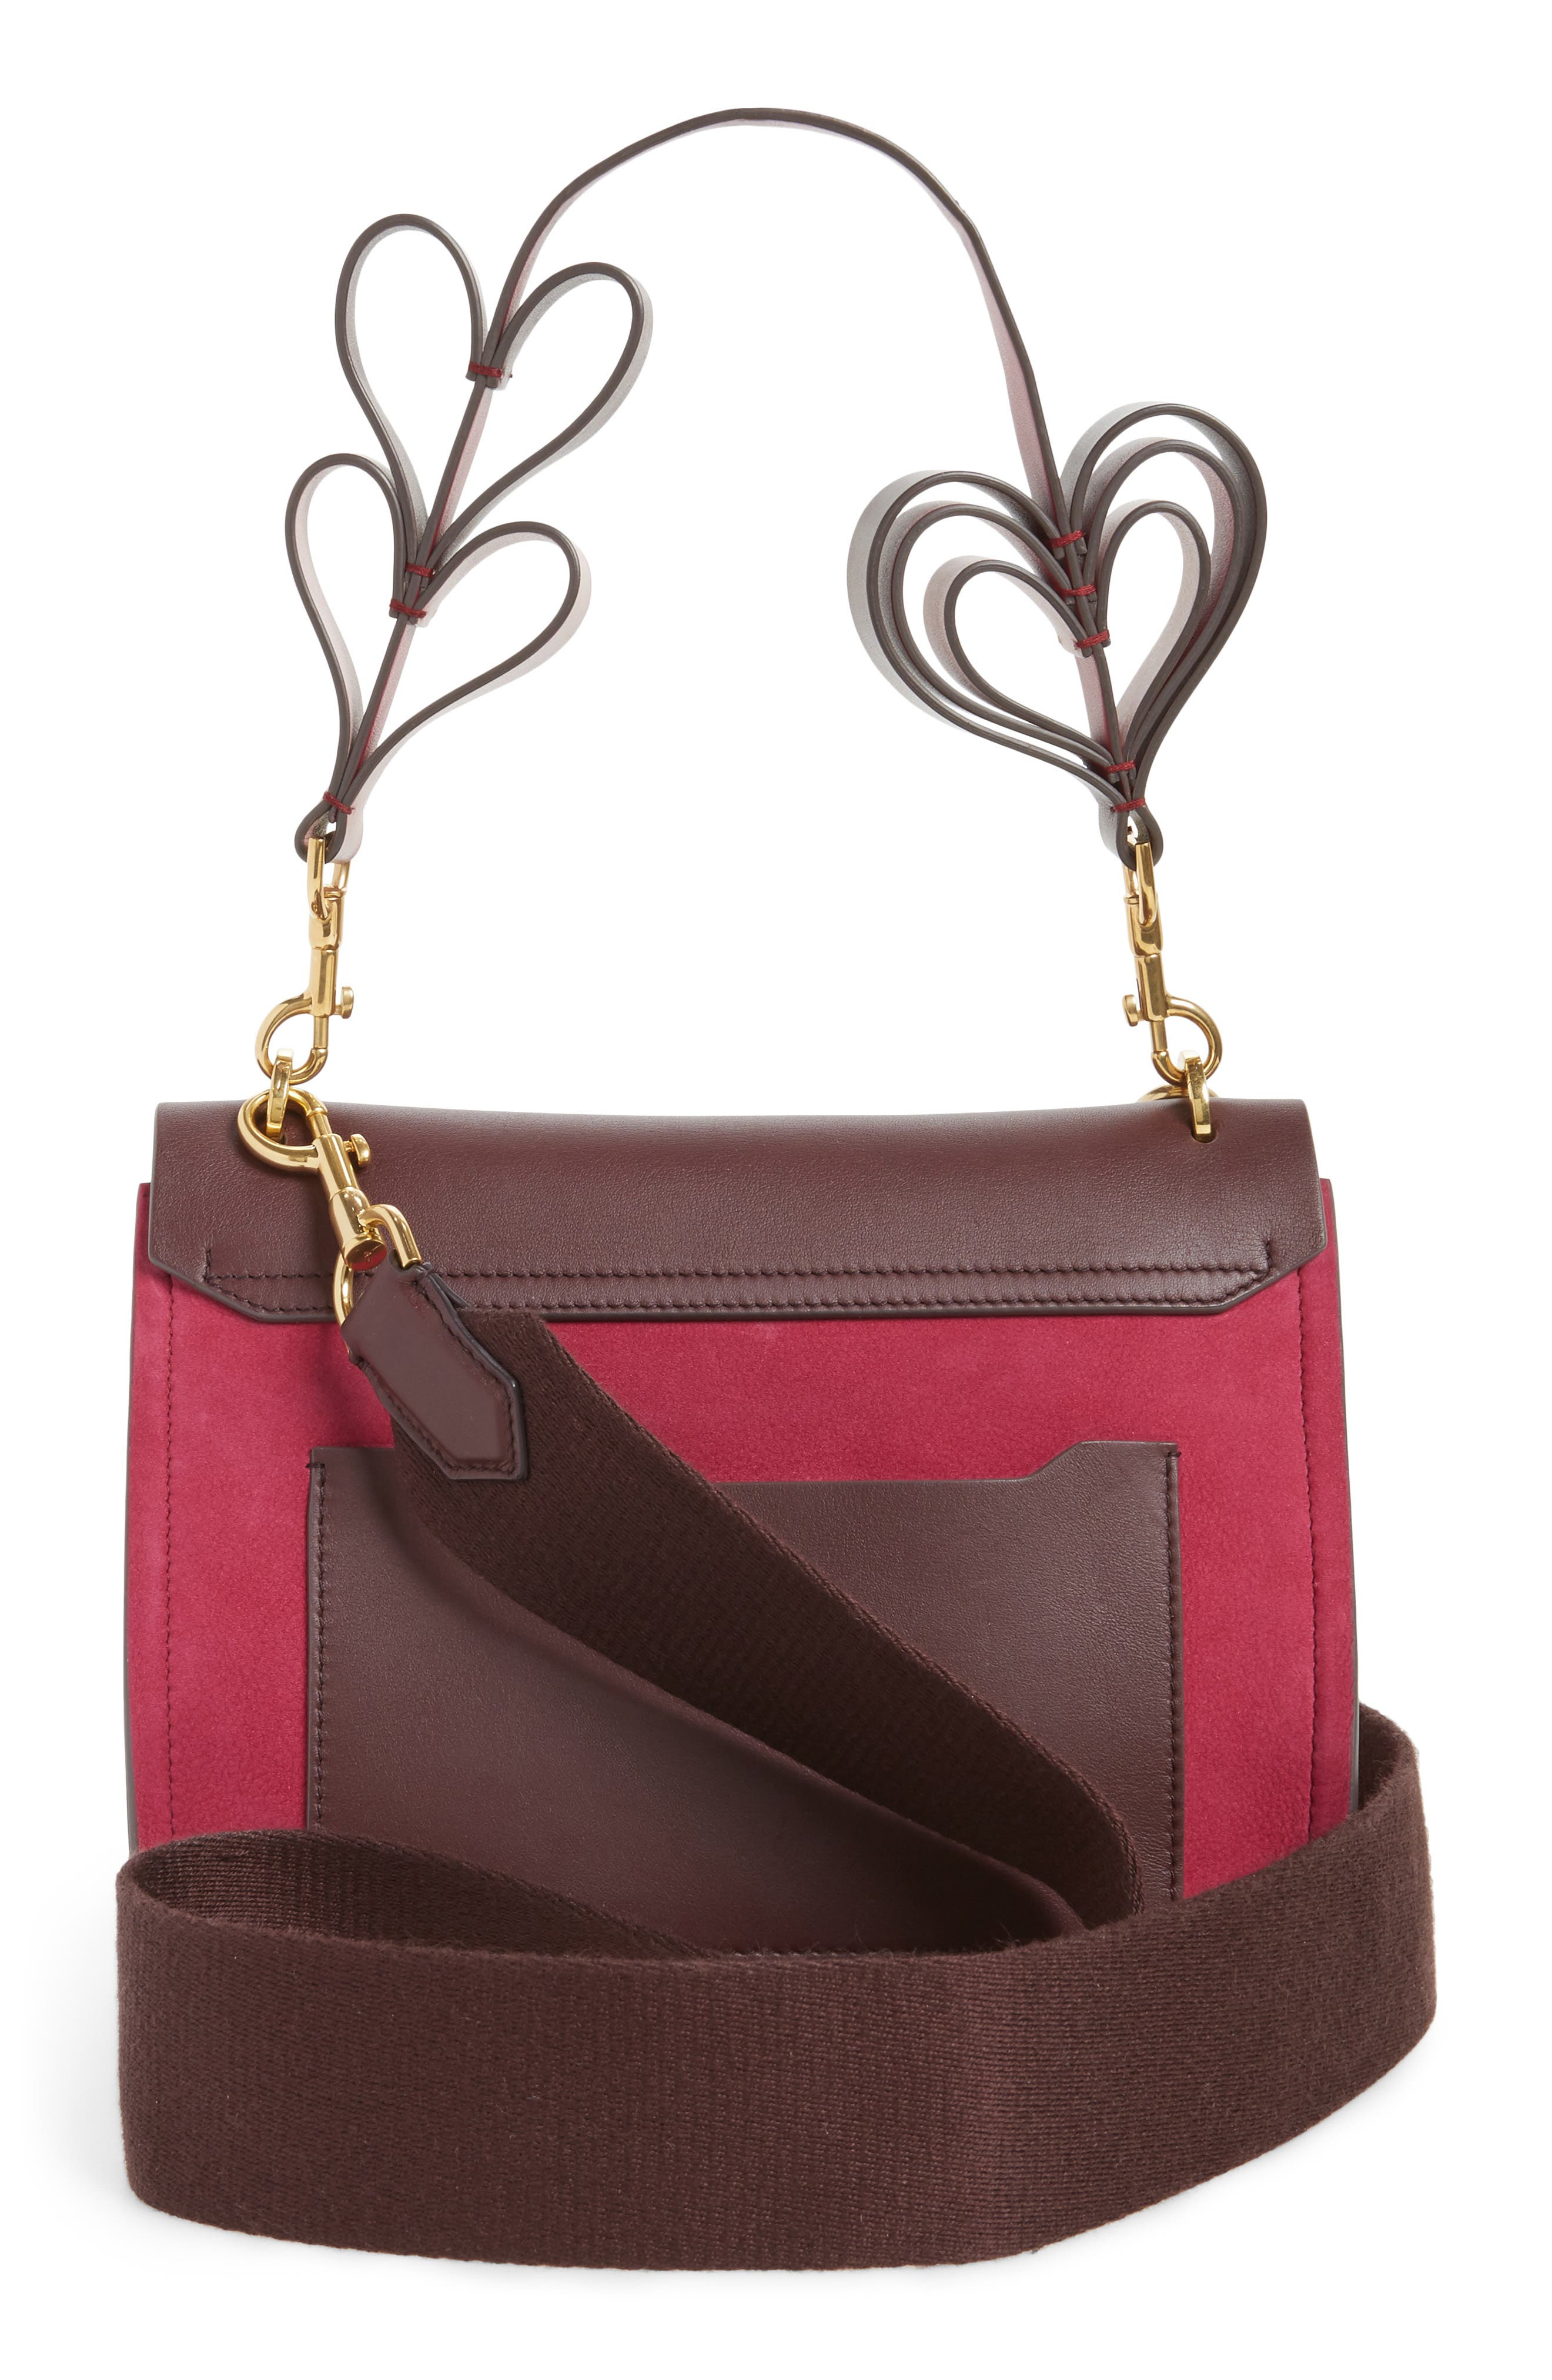 Extra Small Bathhurst Heart Leather Shoulder Bag,                             Alternate thumbnail 3, color,                             650